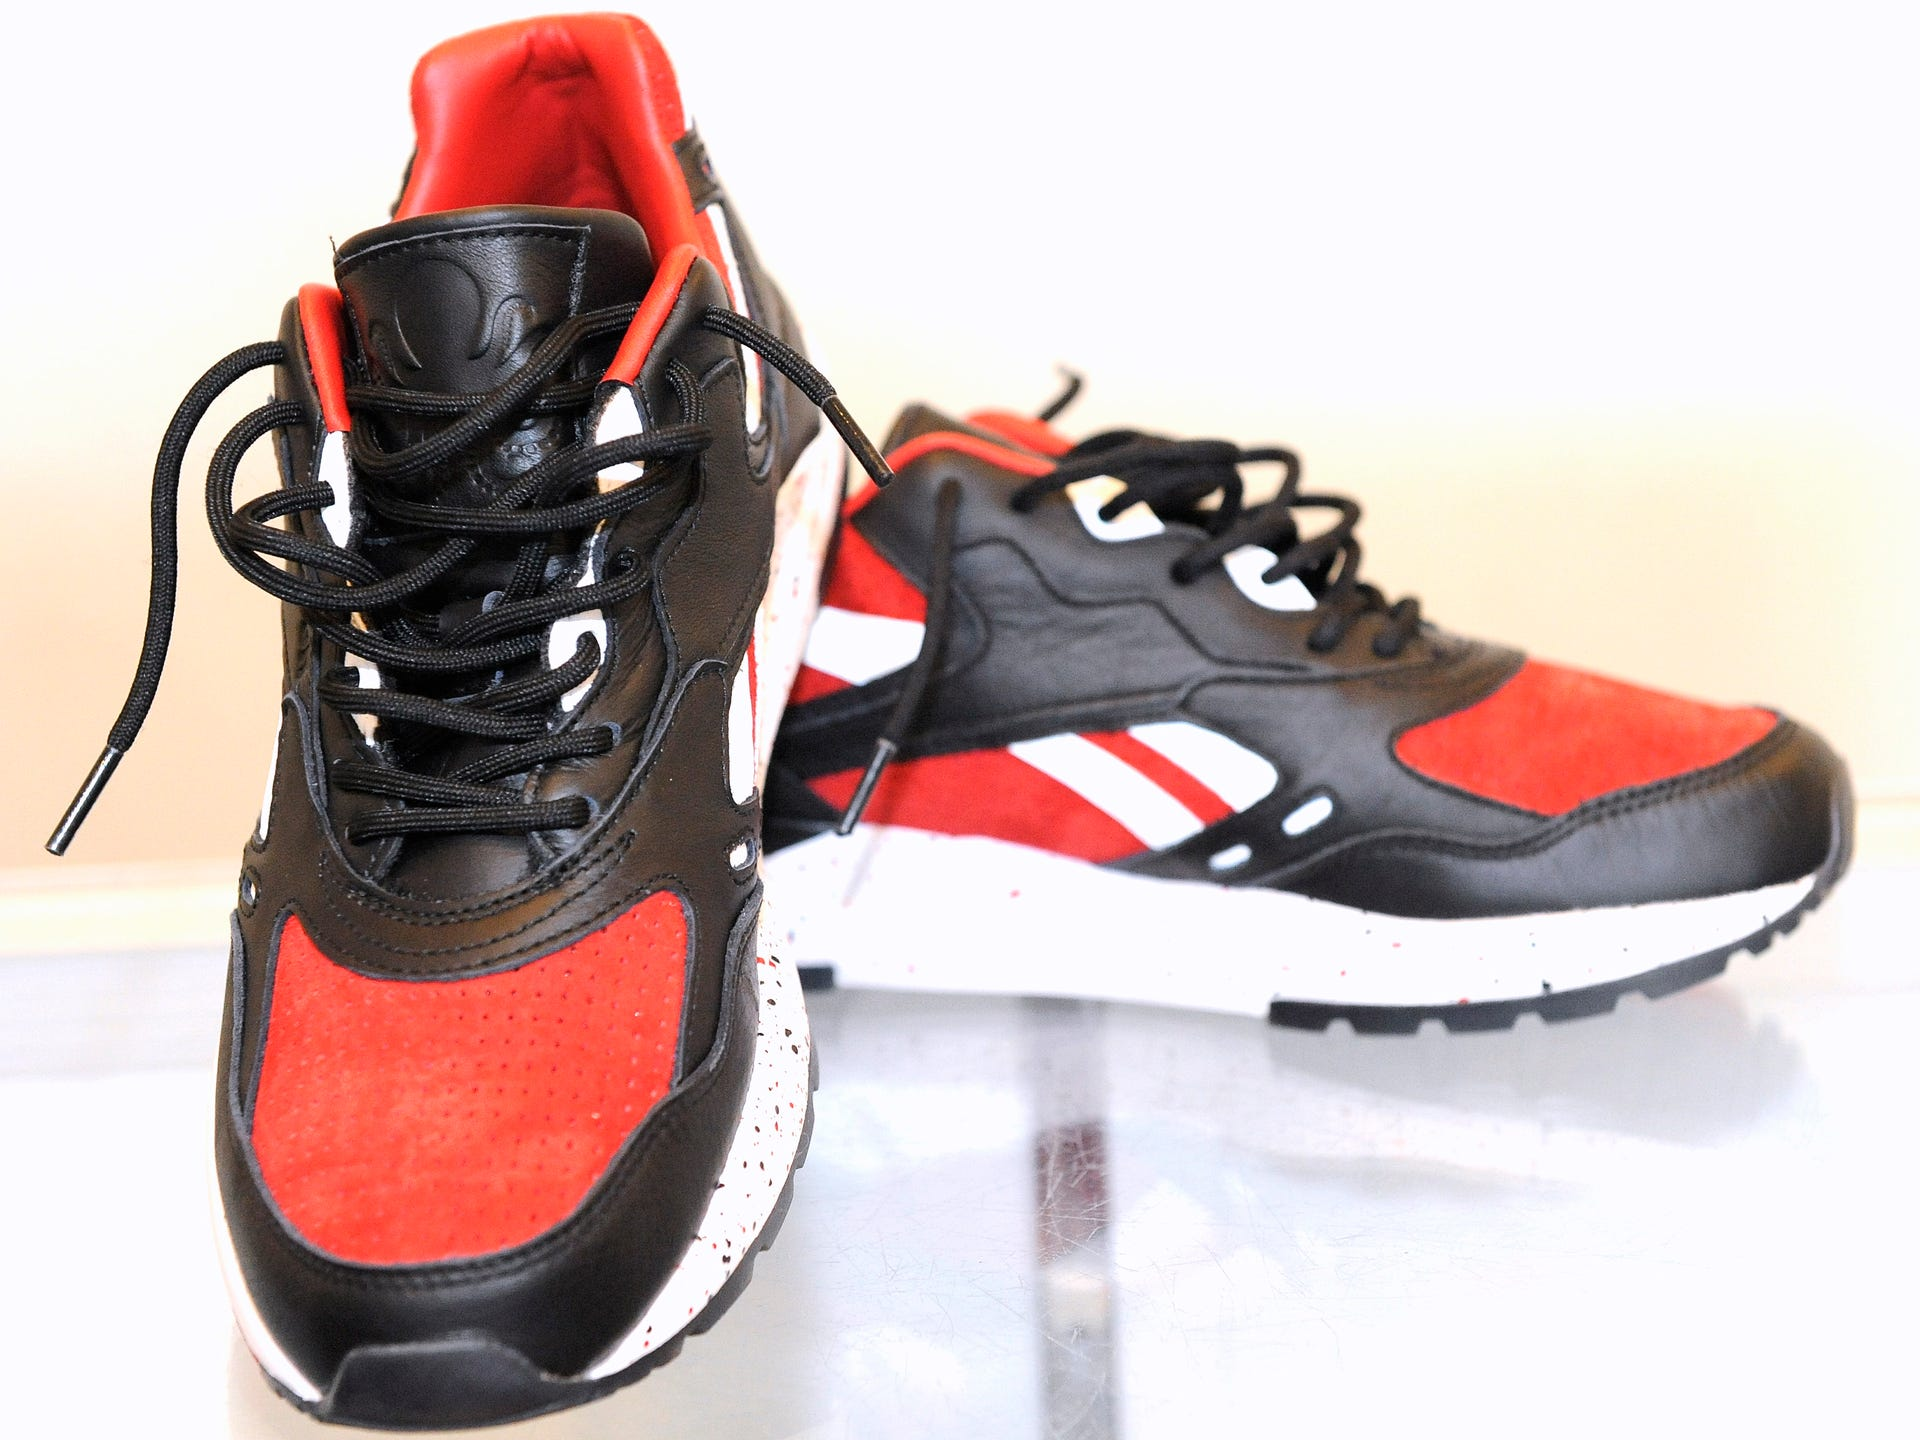 official photos 99d5c cc13f These sneakers are called the Reebok Bolton.